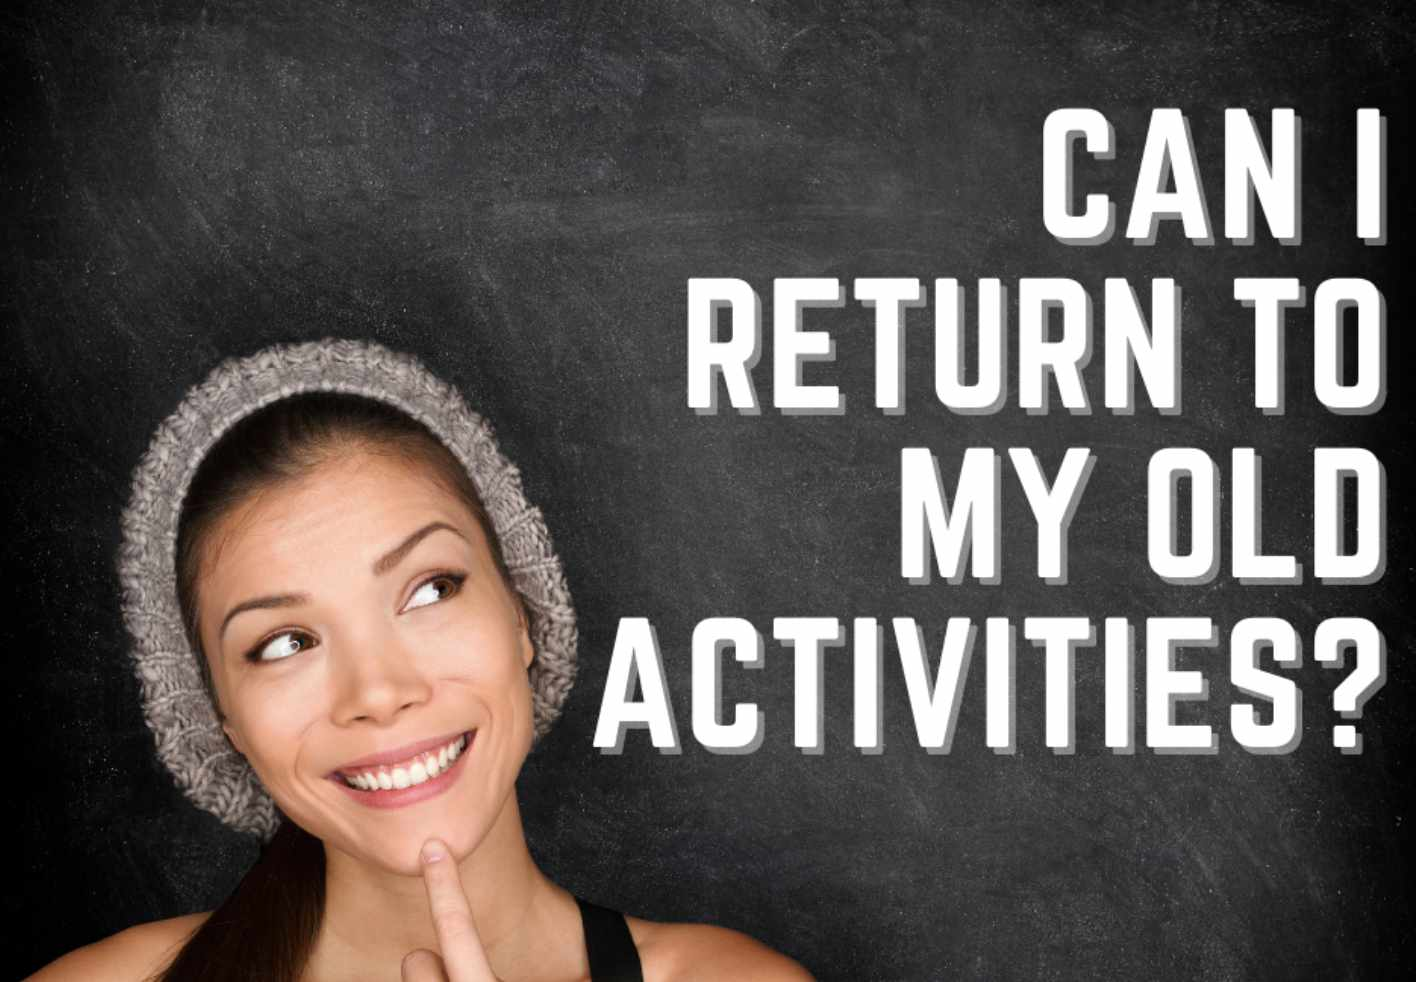 Can I return to my old activities after vaccination